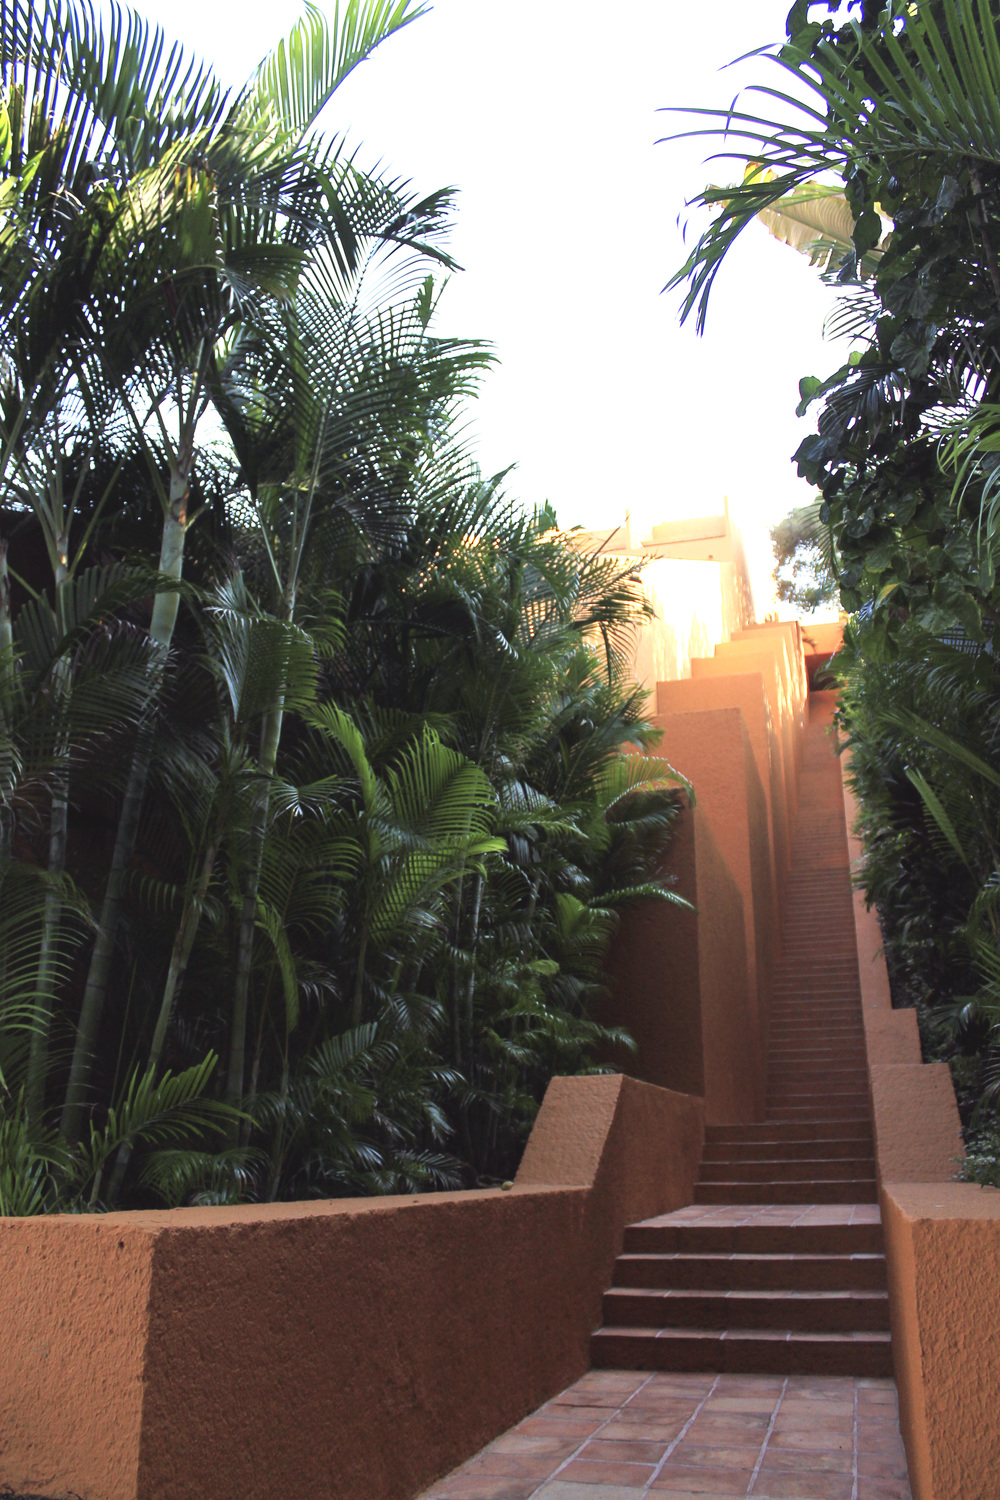 architectural stairs mexico ixtapa palm trees